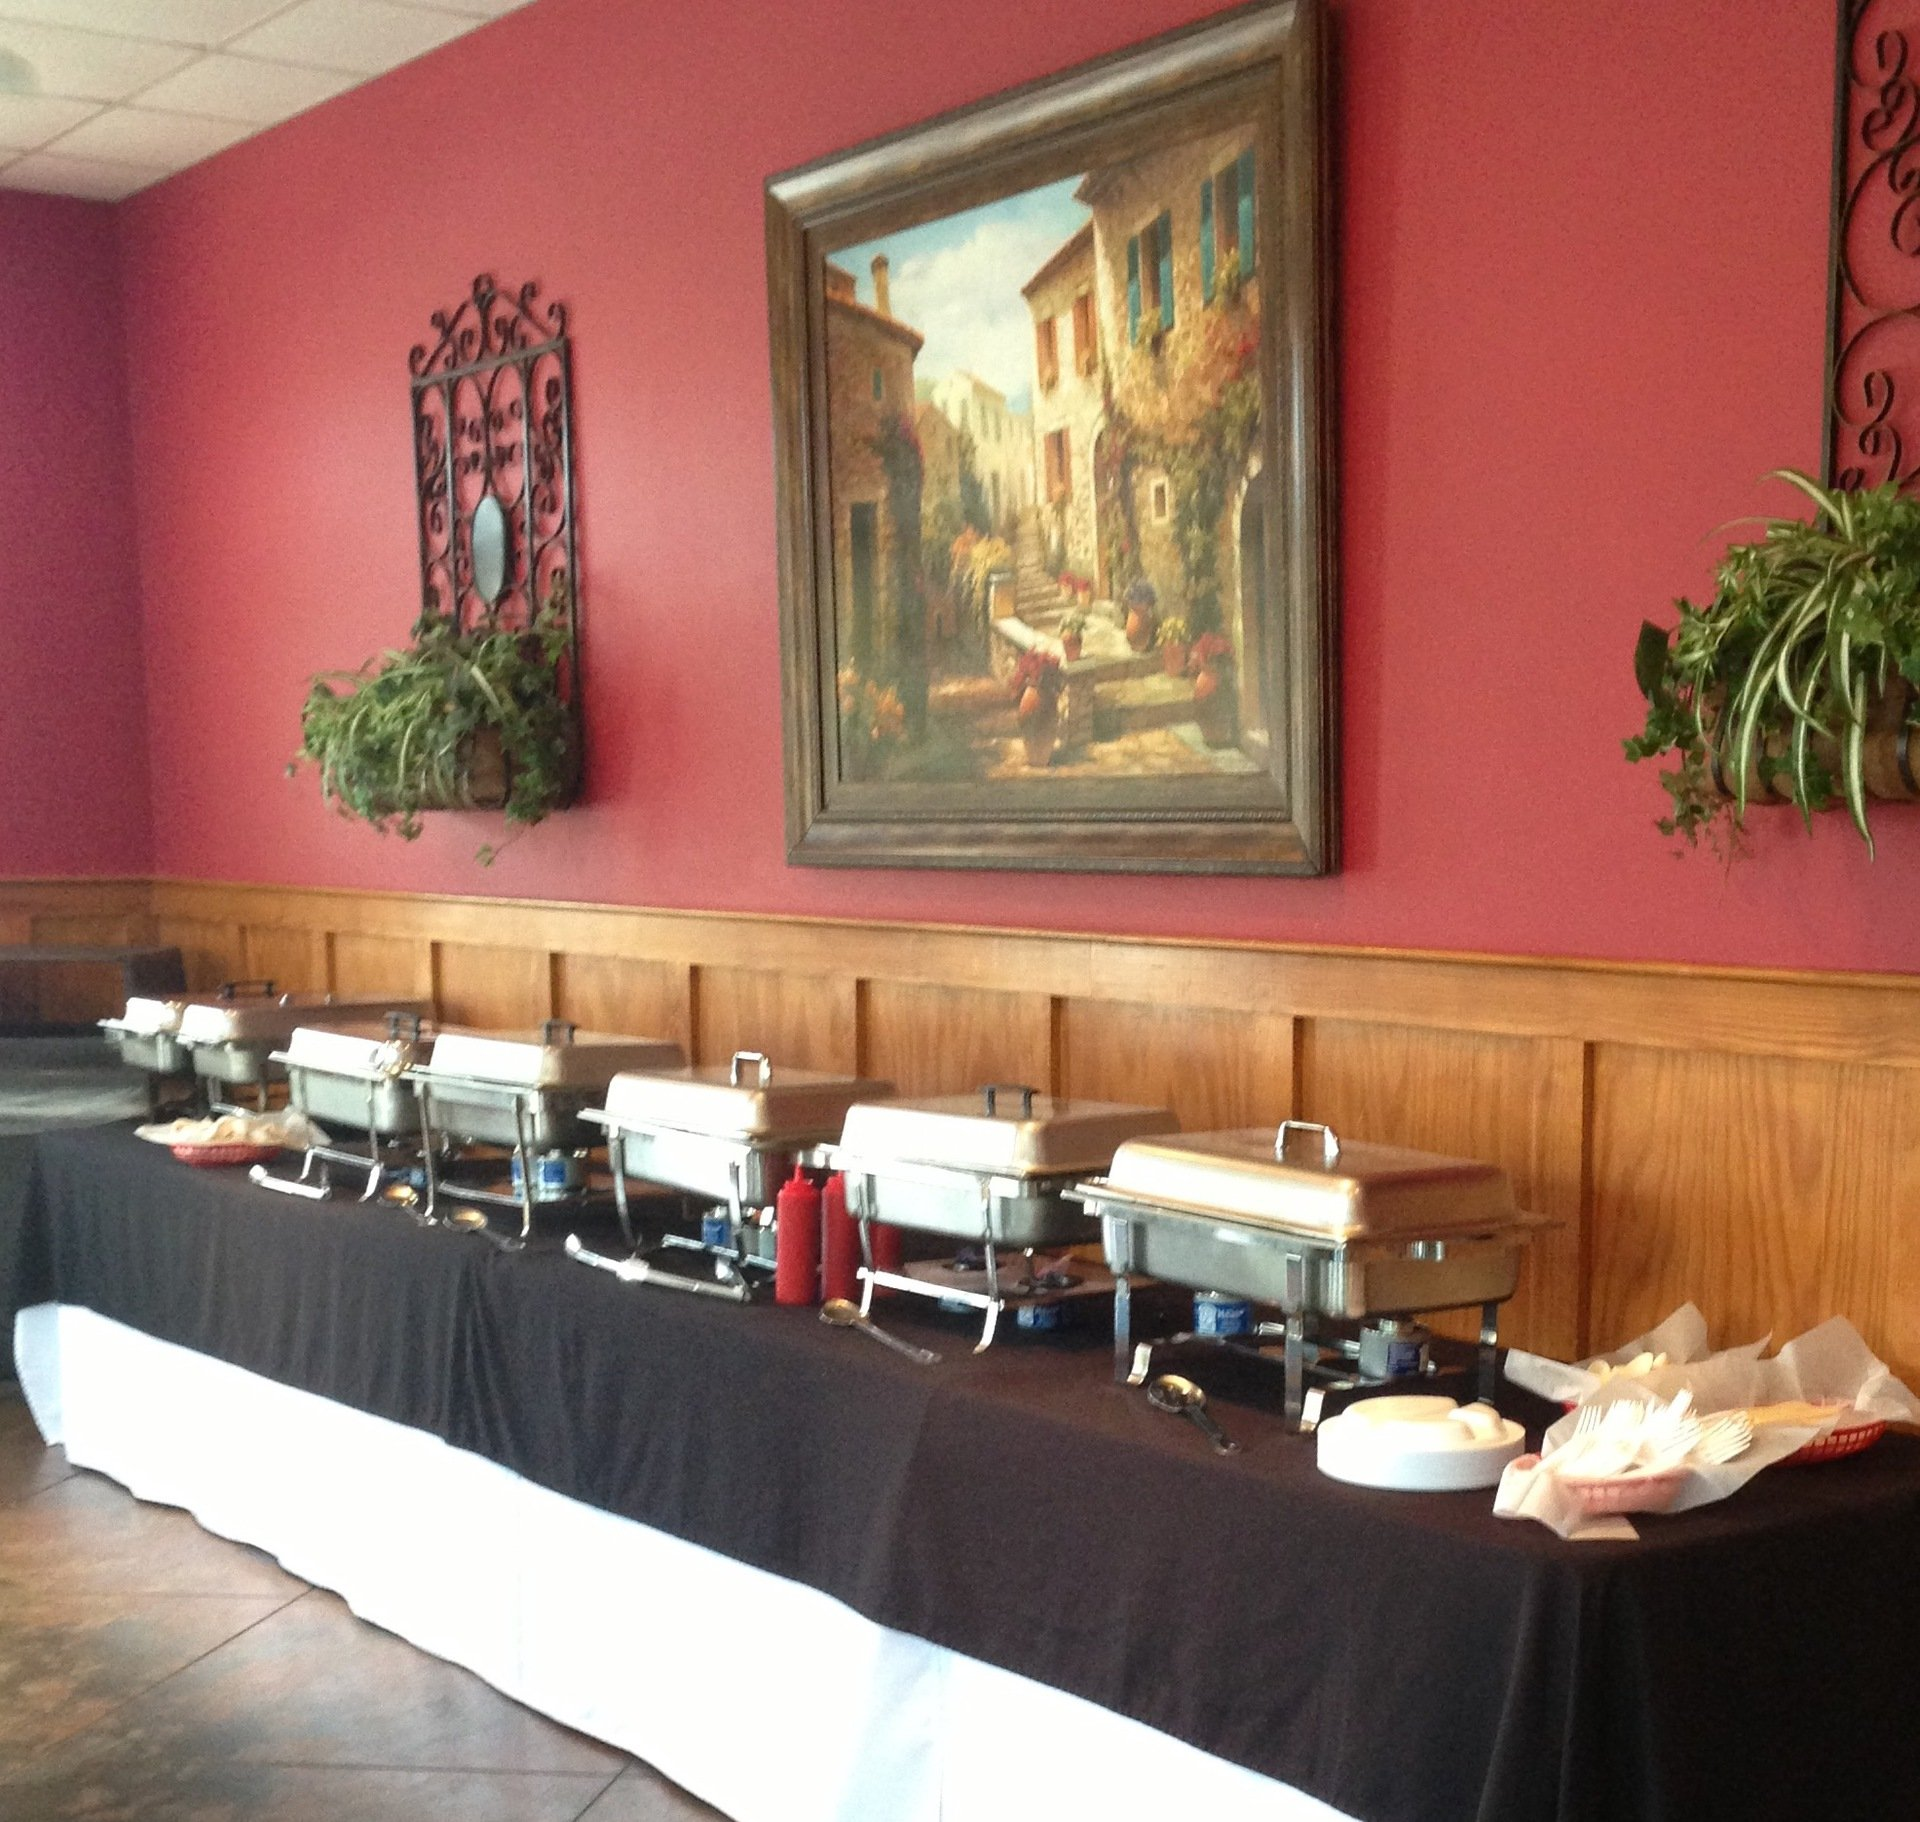 Catering by carter brothers in High Point, NC